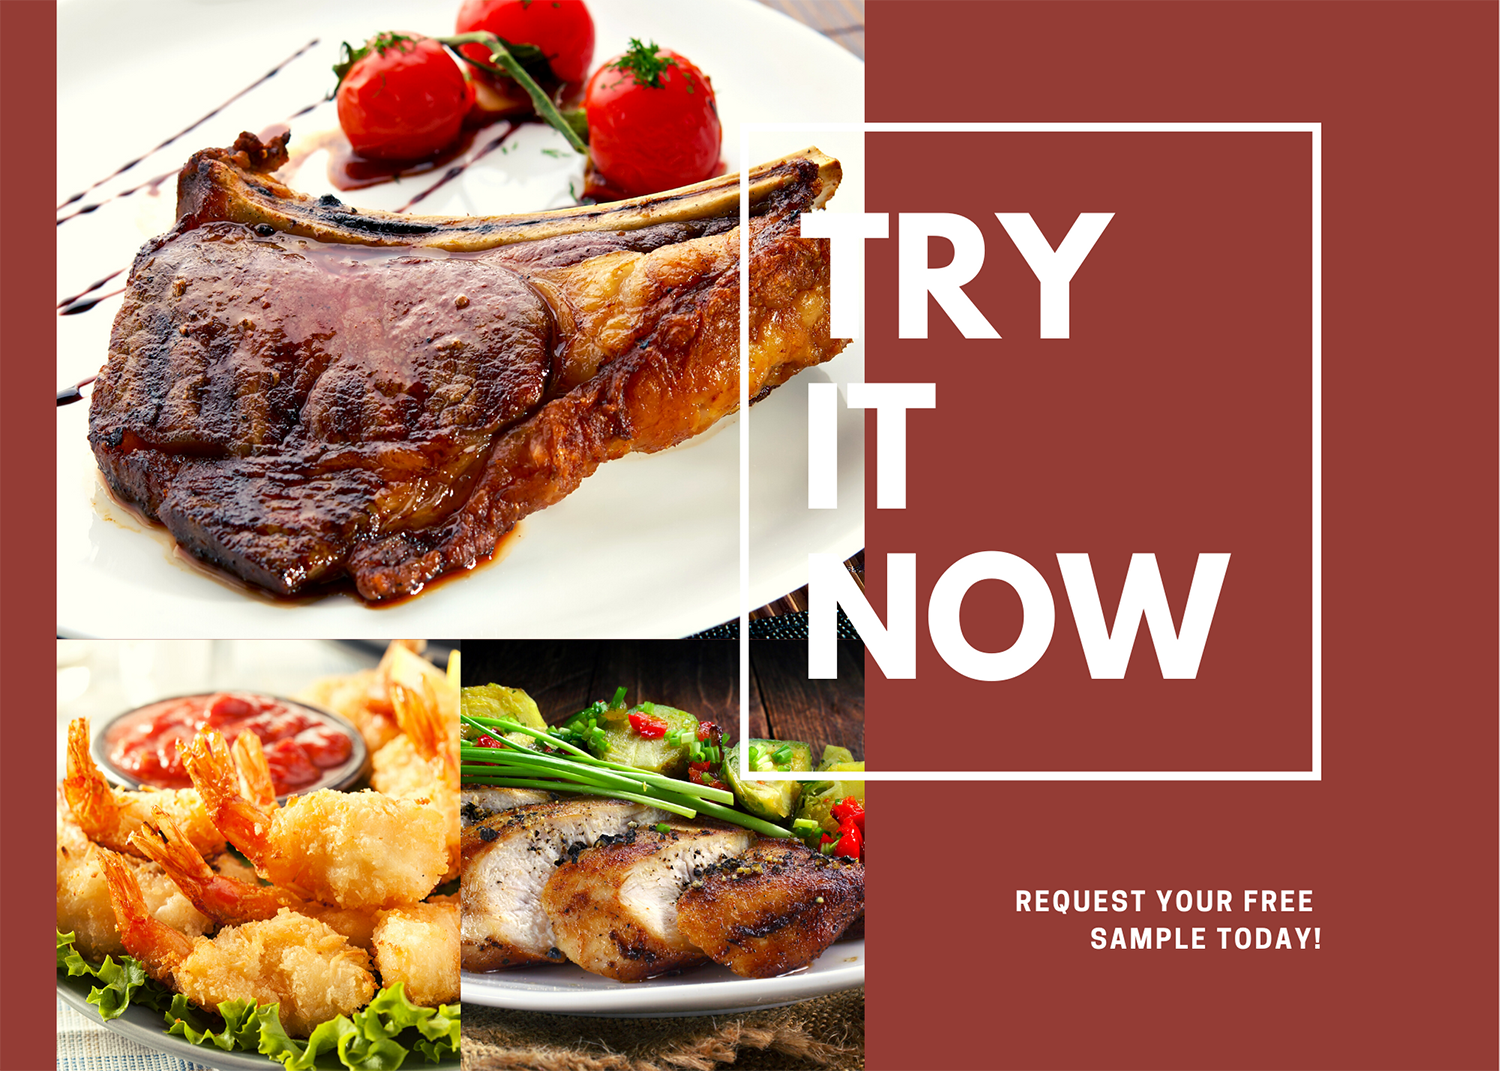 Request A Free Food Sample Now